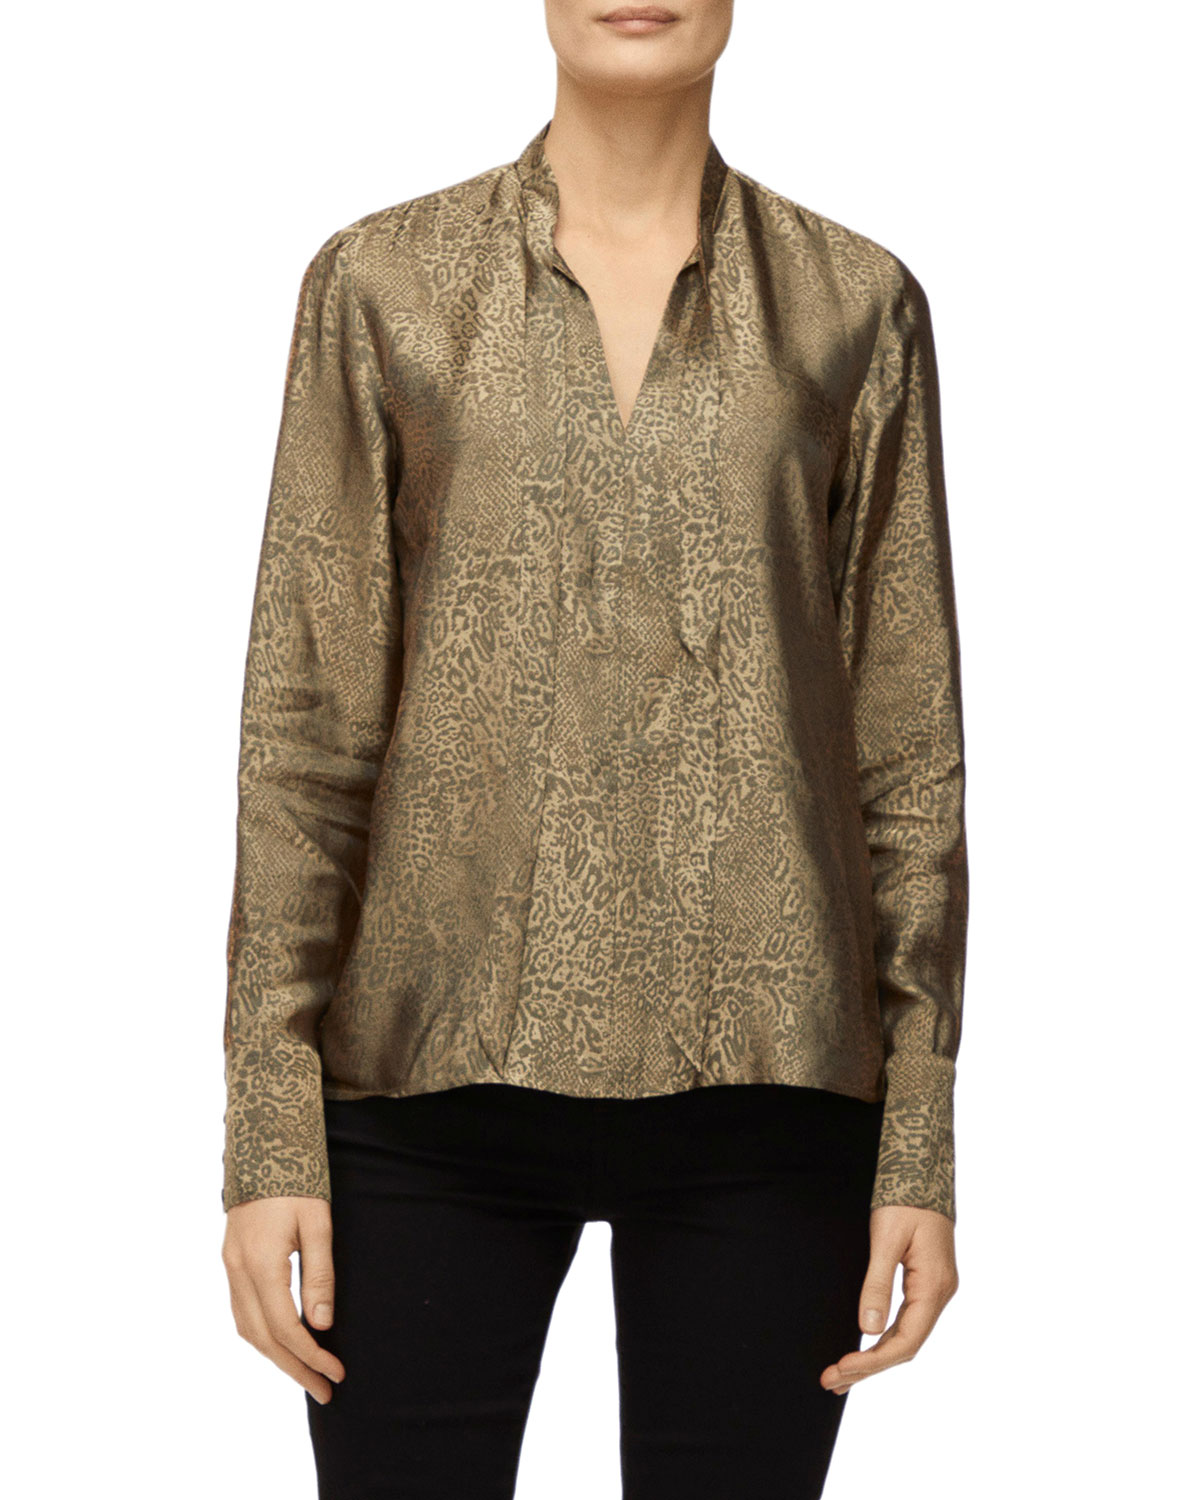 J Brand Tops MIRA PRINTED BOW TIE BLOUSE